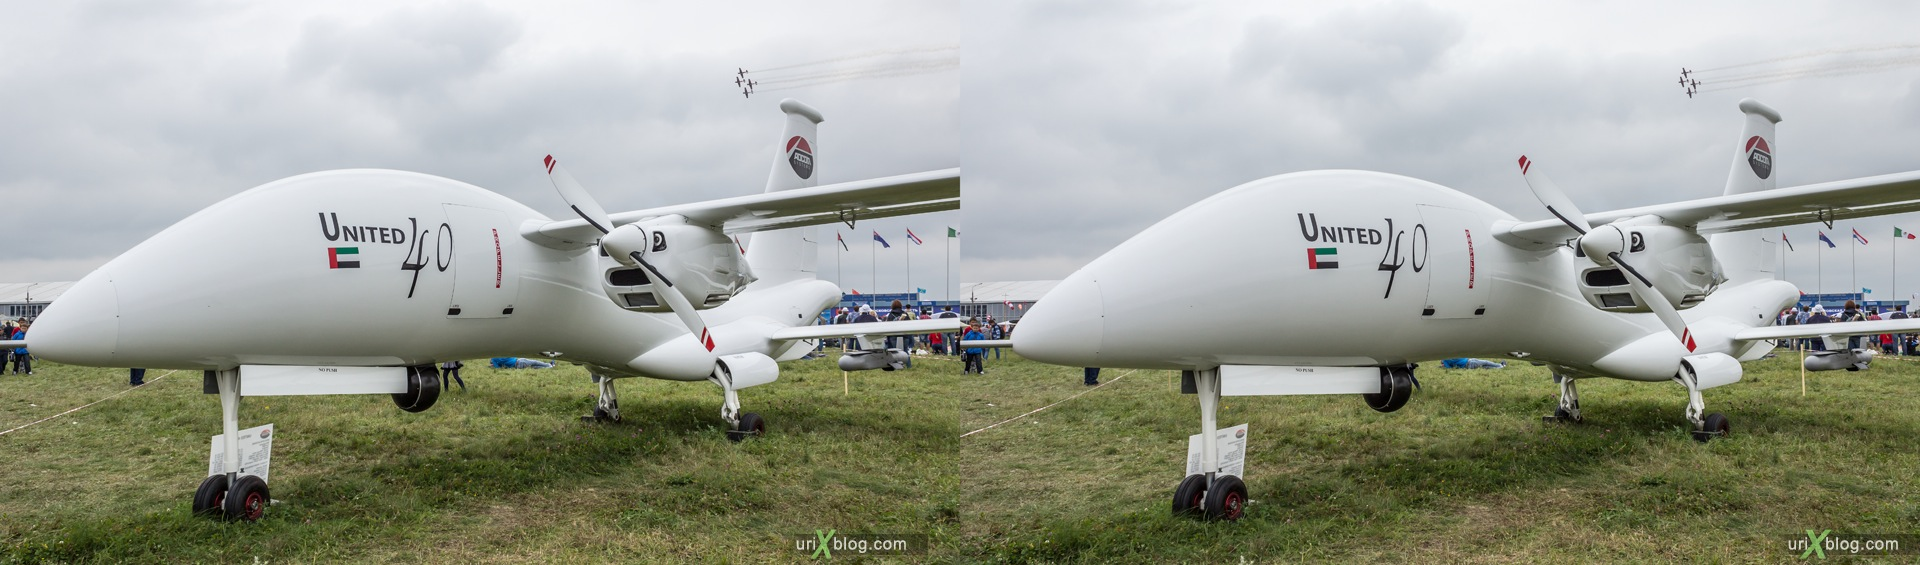 2013, Yabhon United 40, UAV, MAKS, International Aviation and Space Salon, Russia, Ramenskoye airfield, airplane, 3D, stereo pair, cross-eyed, crossview, cross view stereo pair, stereoscopic